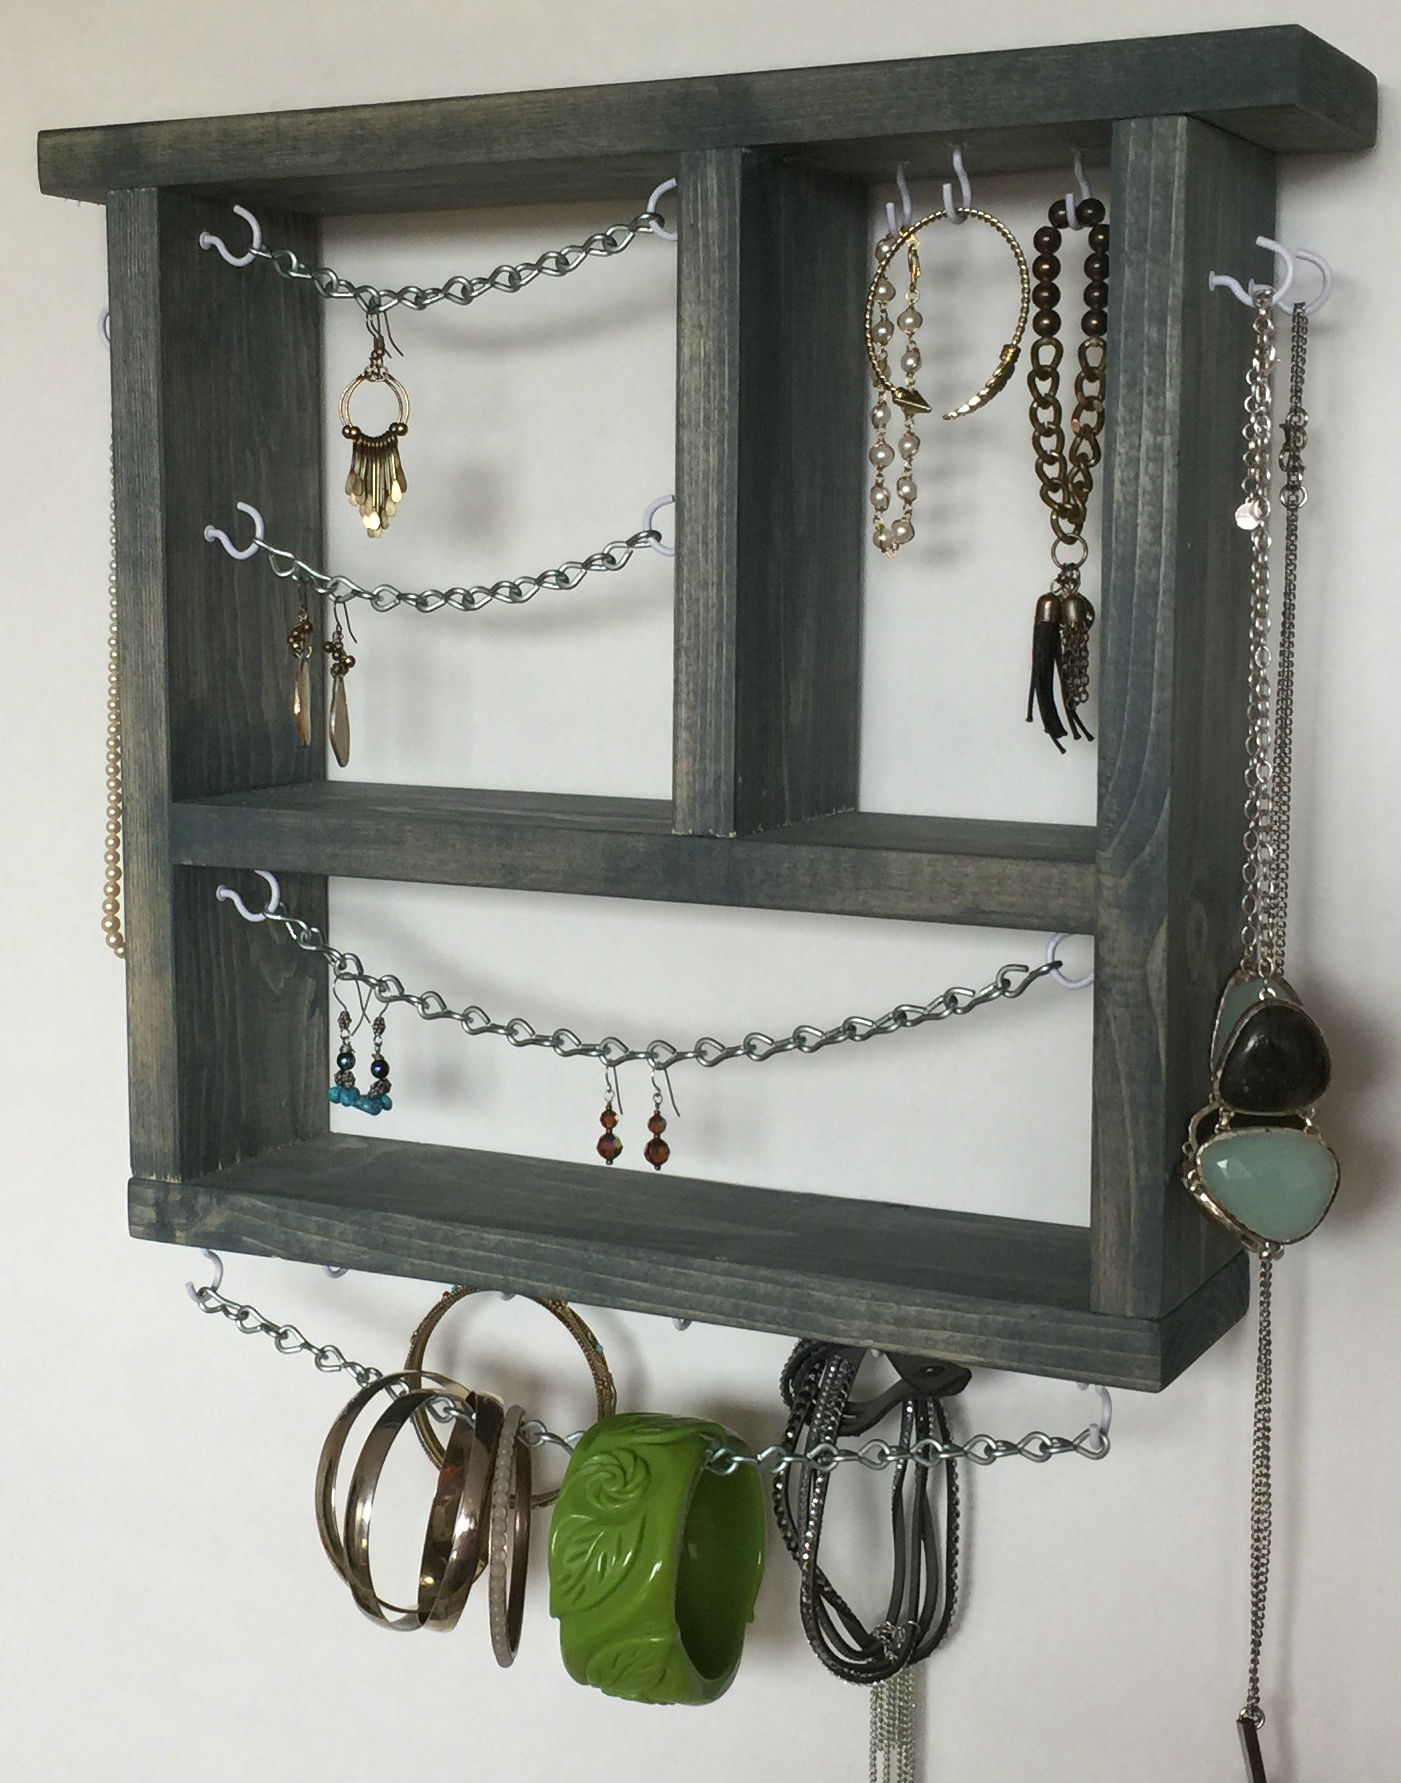 Jewelry Collection Organizer Wall Mounted